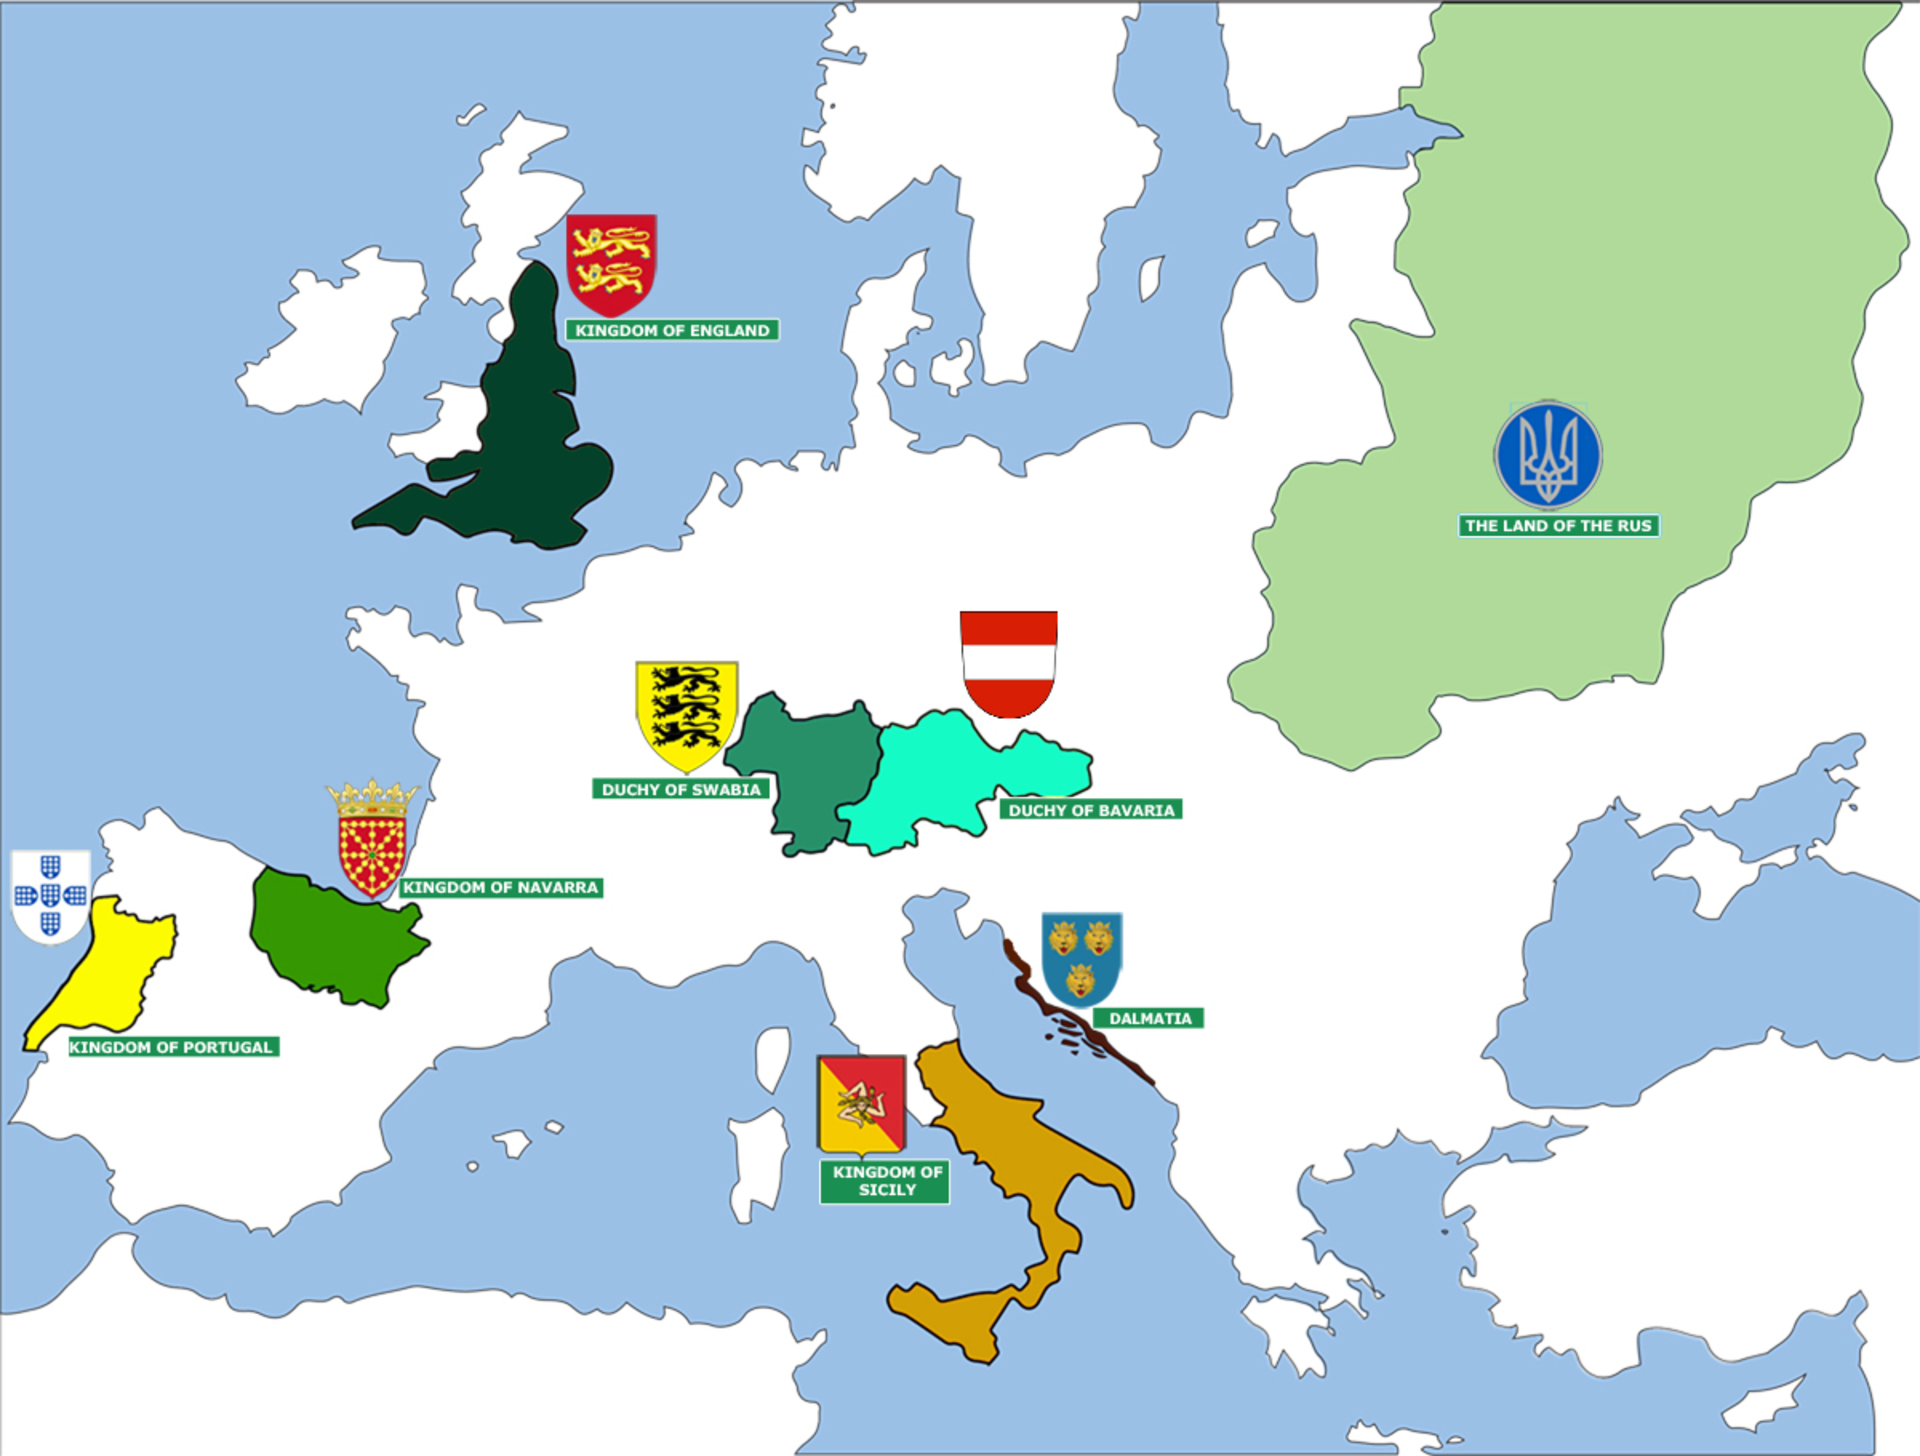 Imaginary Football History on lampedusa island italy map, viceroyalty of peru on map, county of tripoli on map, kingdom of sicily flag, battle of cannae on map, principality of antioch on map, ryukyu kingdom on map,